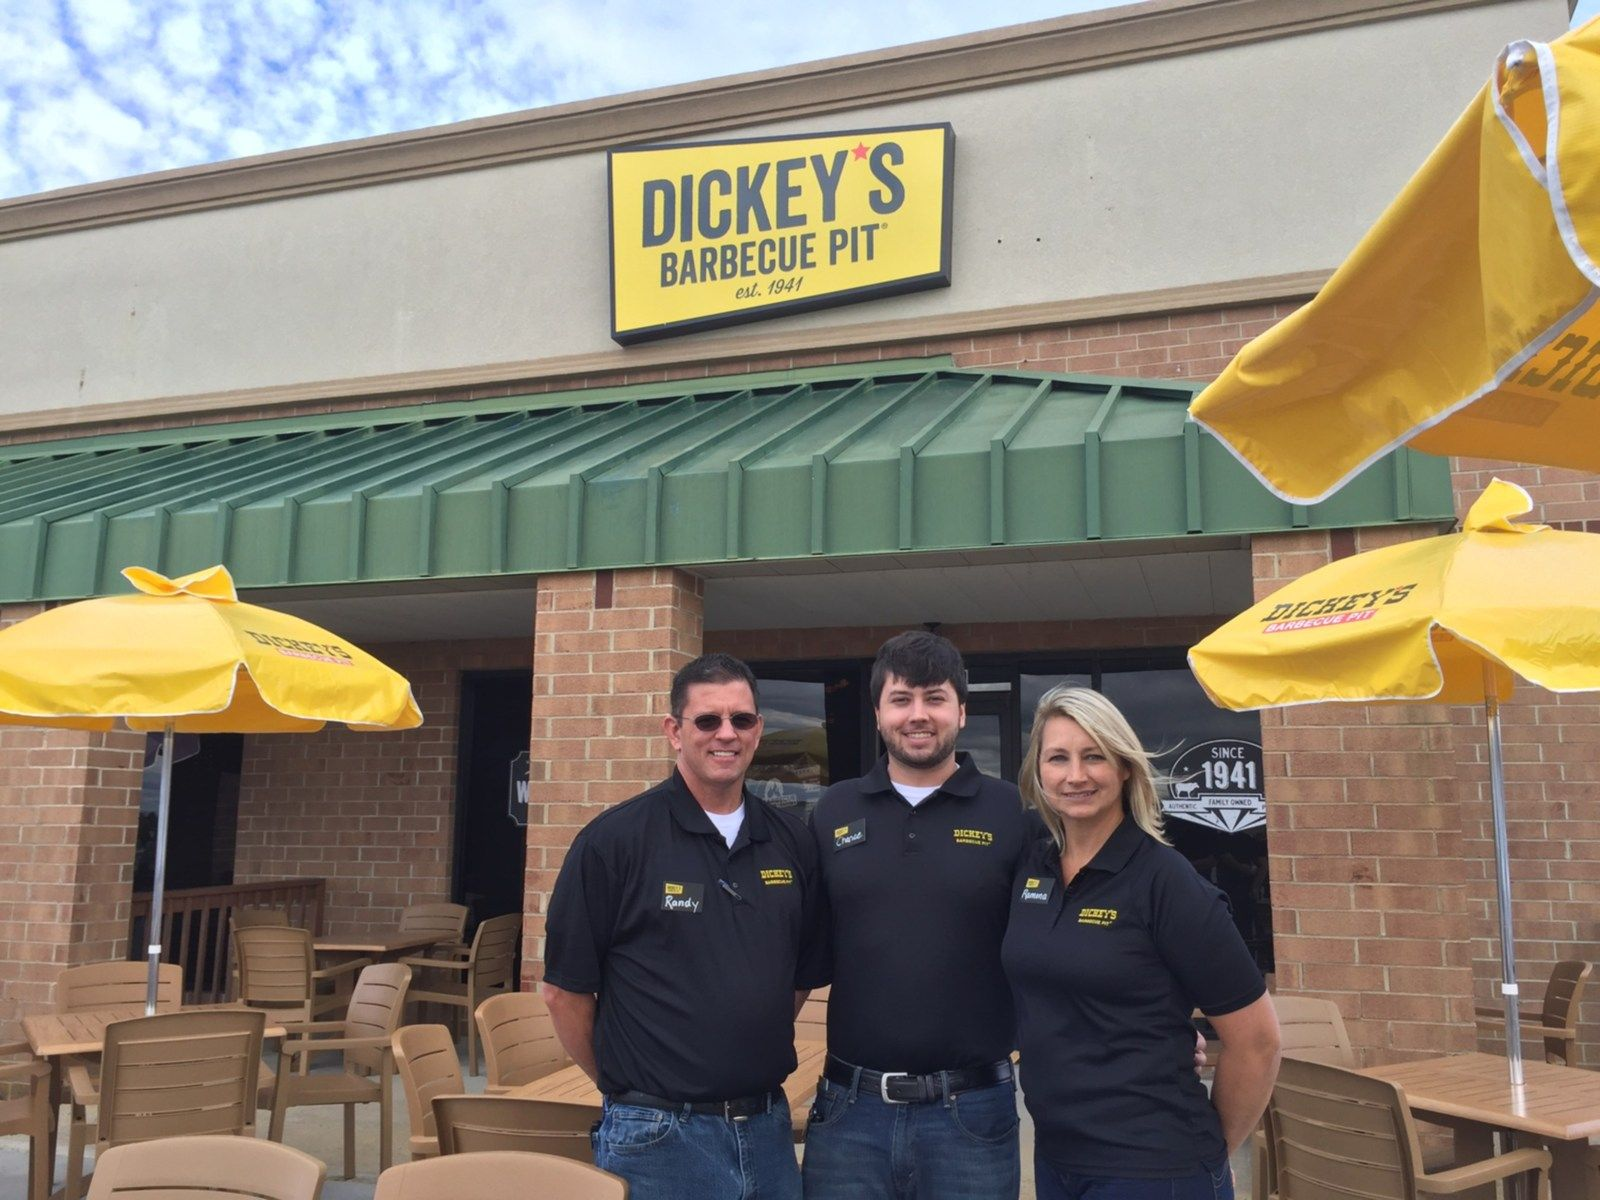 Dickey's Texas-style Barbecue Comes to Albemarle